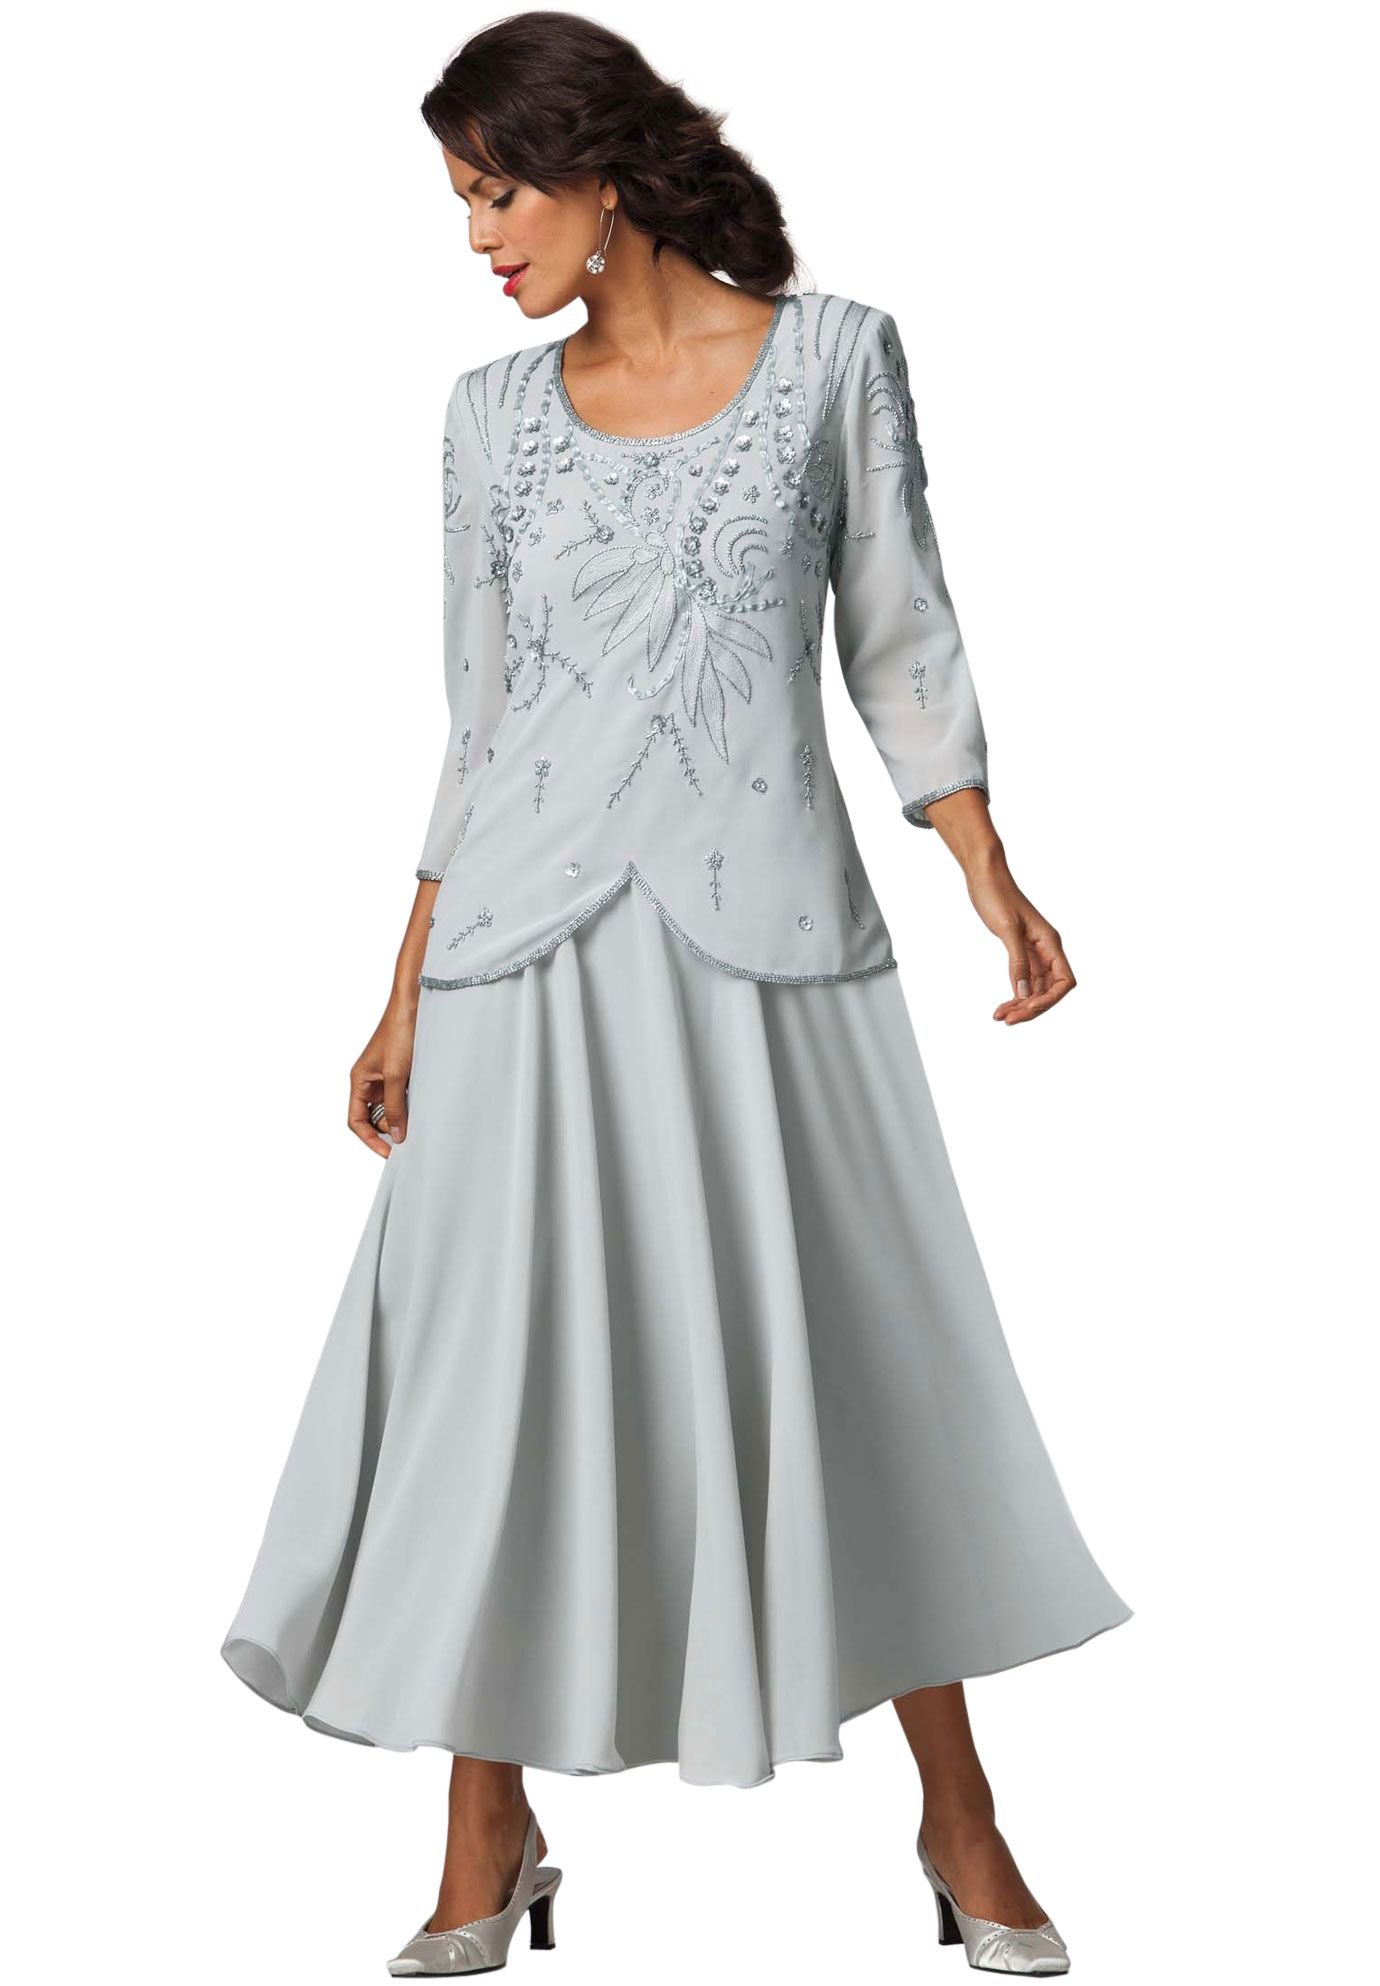 a00575abba3 Plus Size Wedding Party  Mother of the Bride for Women